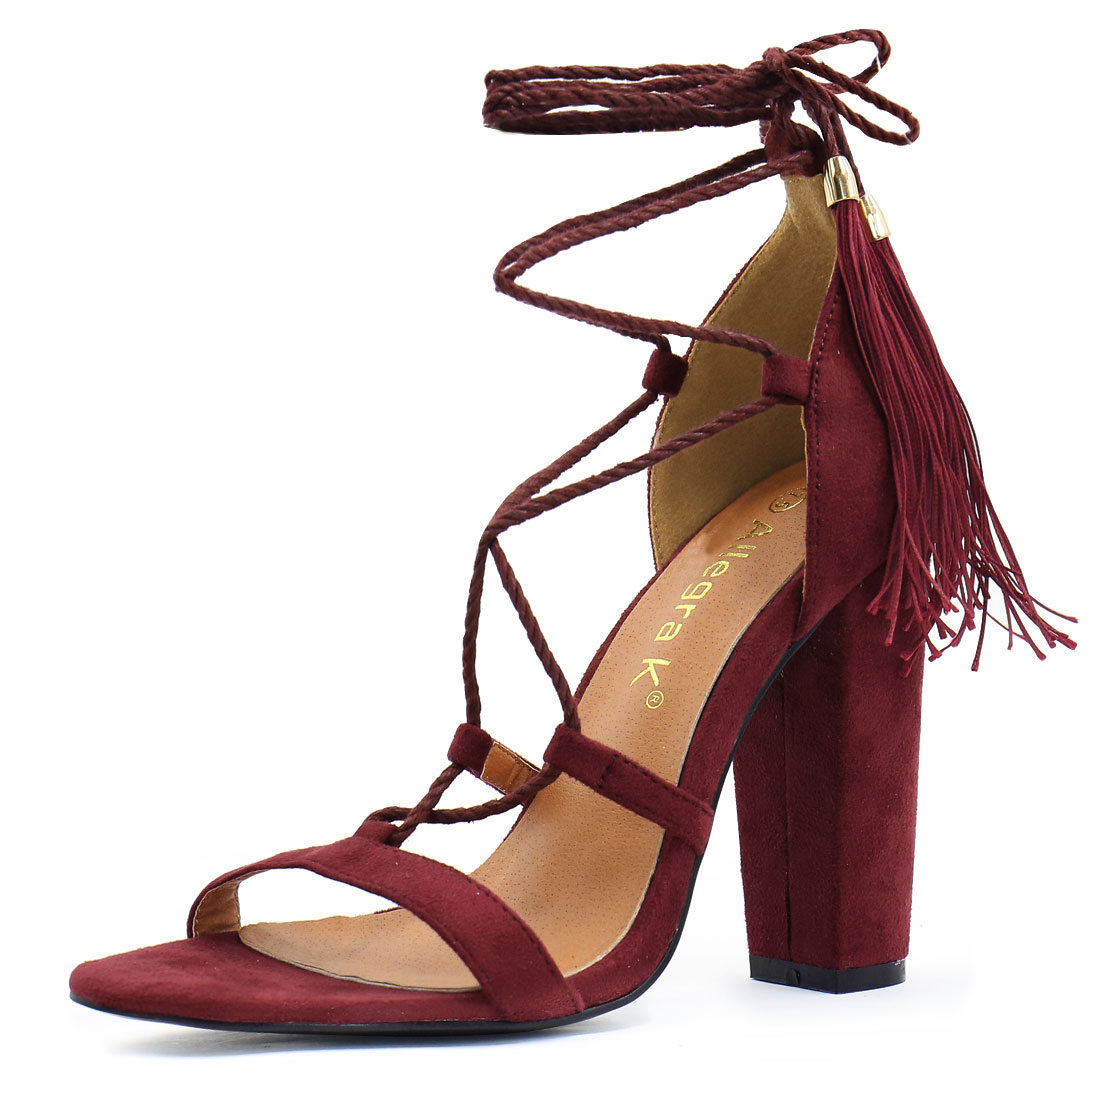 Women Chunky High Heel Tassel Closure Lace Up Sandals Wine US 10.5